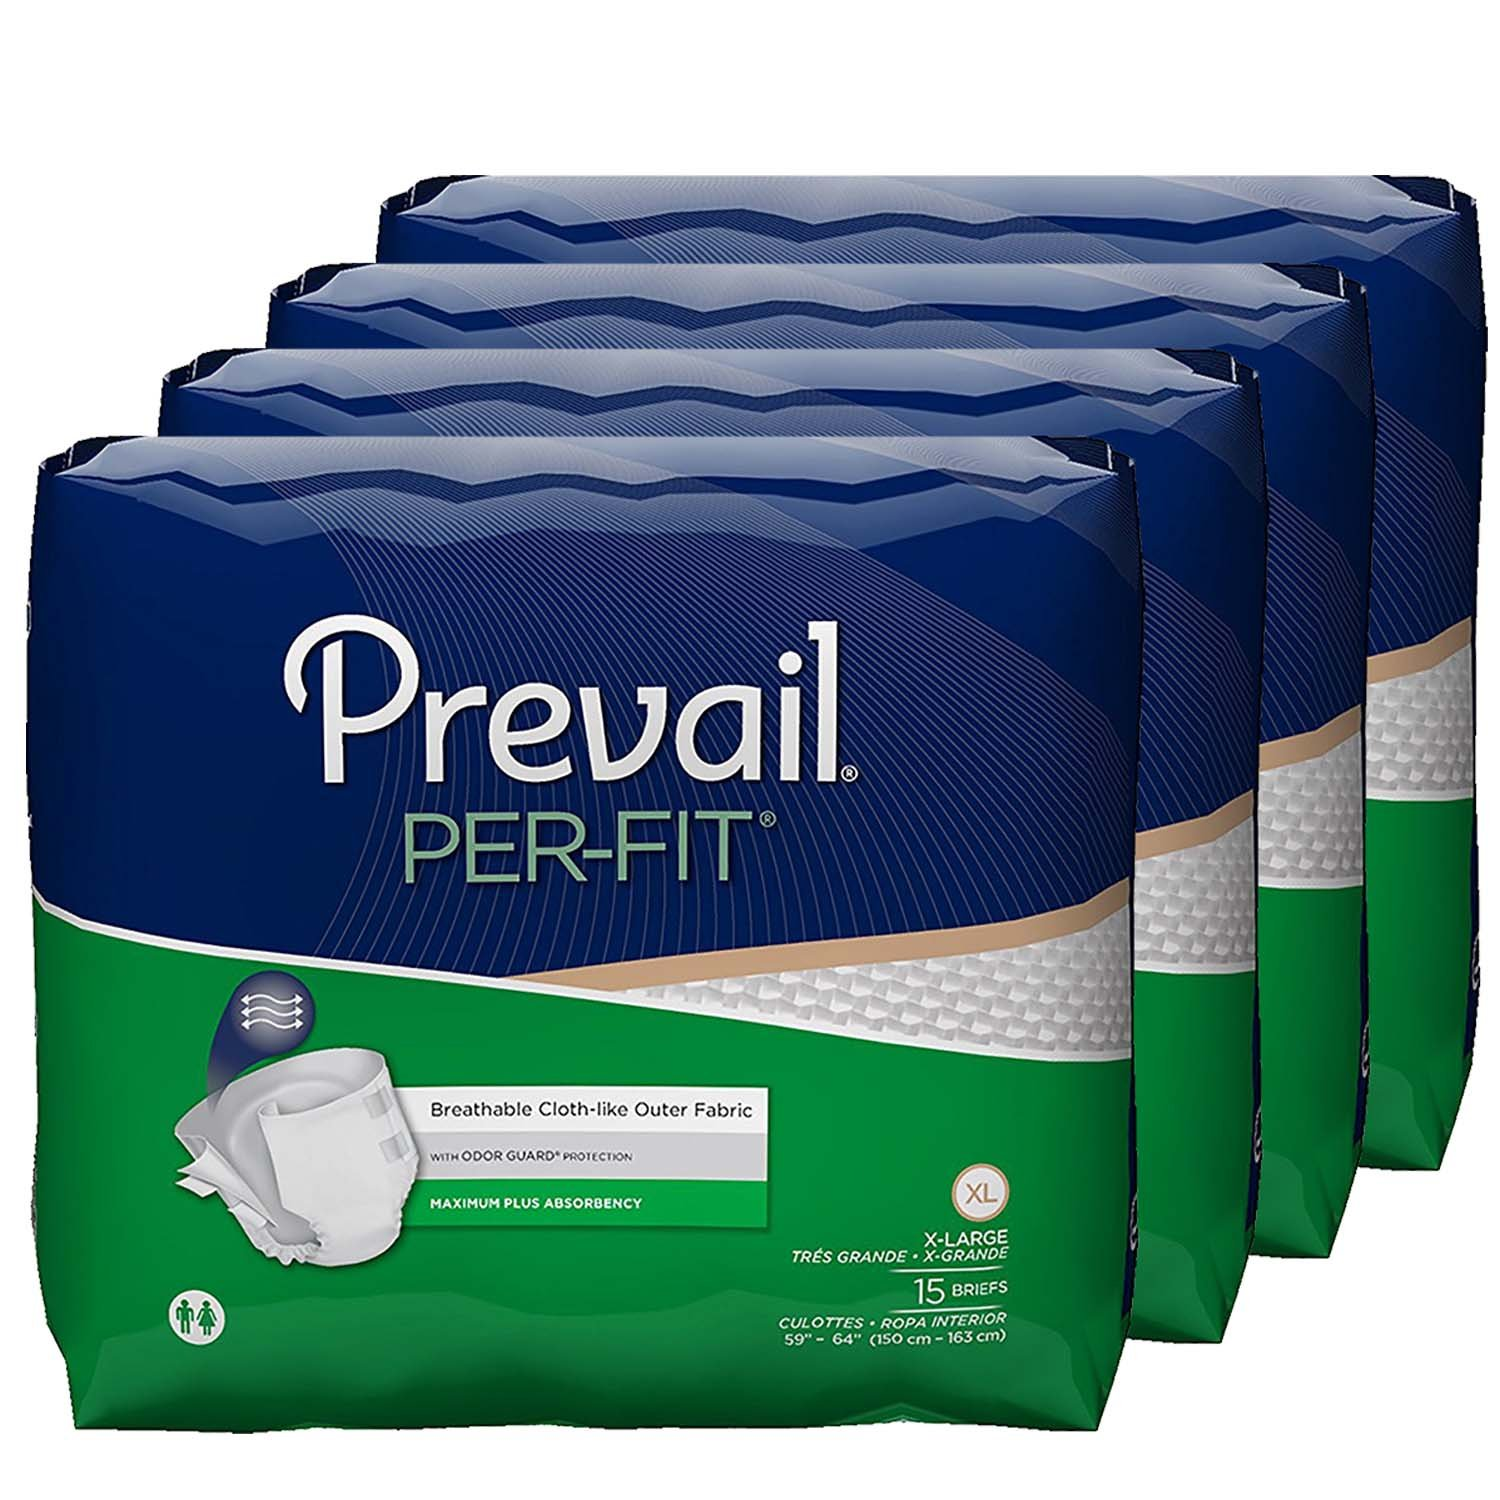 Prevail Per-Fit Maximum Absorbency Incontinence Briefs, Extra Large, 60 Total Count